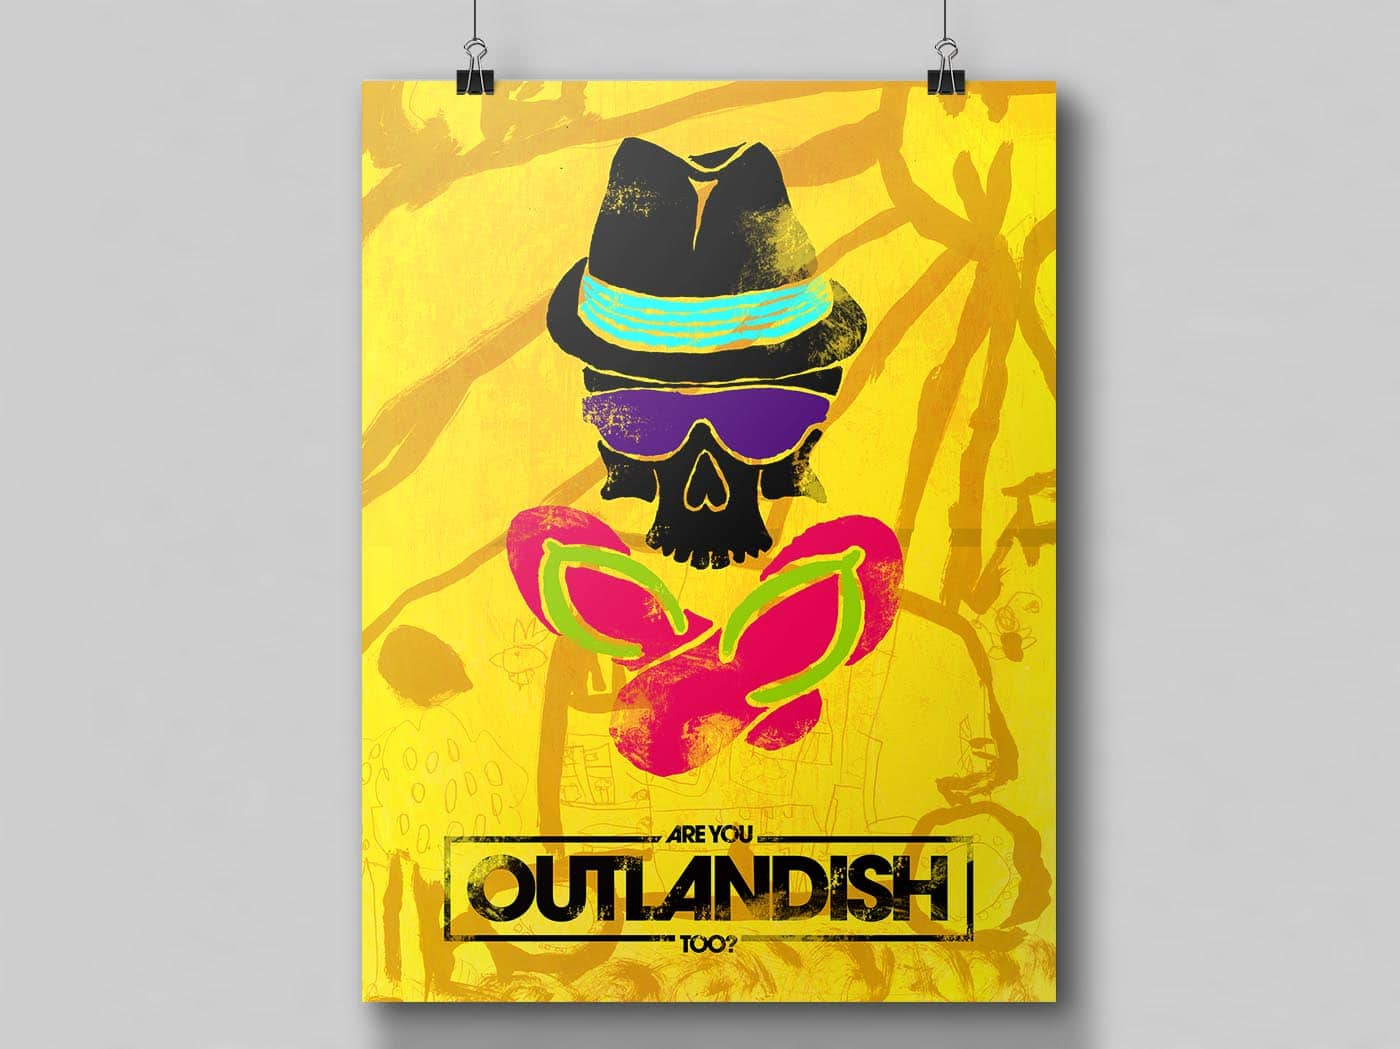 Are you outlandish too?